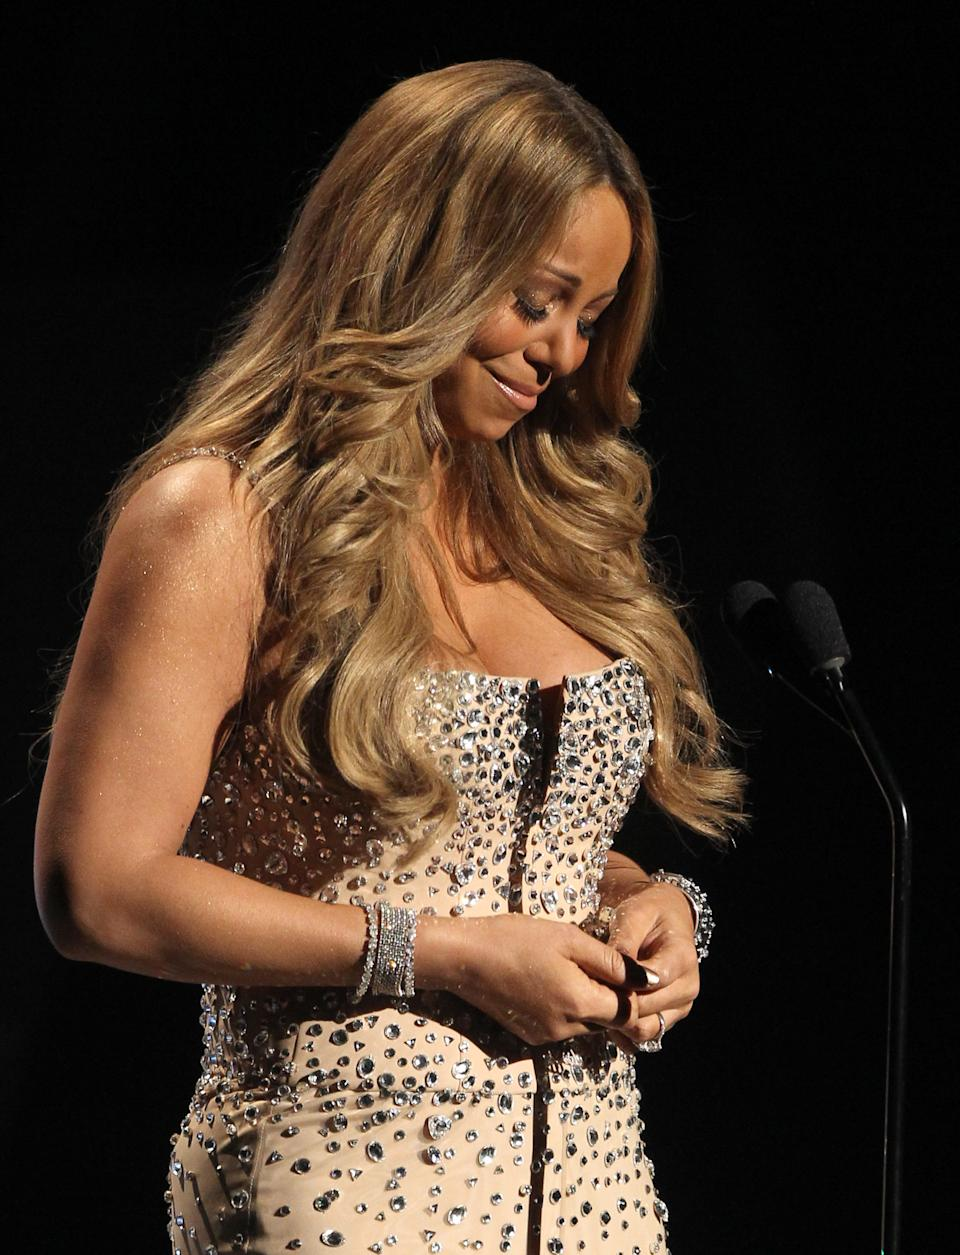 Mariah Carey pauses as makes an address during the in memoriam to Whitney Houston at the BET Awards on Sunday, July 1, 2012, in Los Angeles. (Photo by Matt Sayles/Invision/AP)